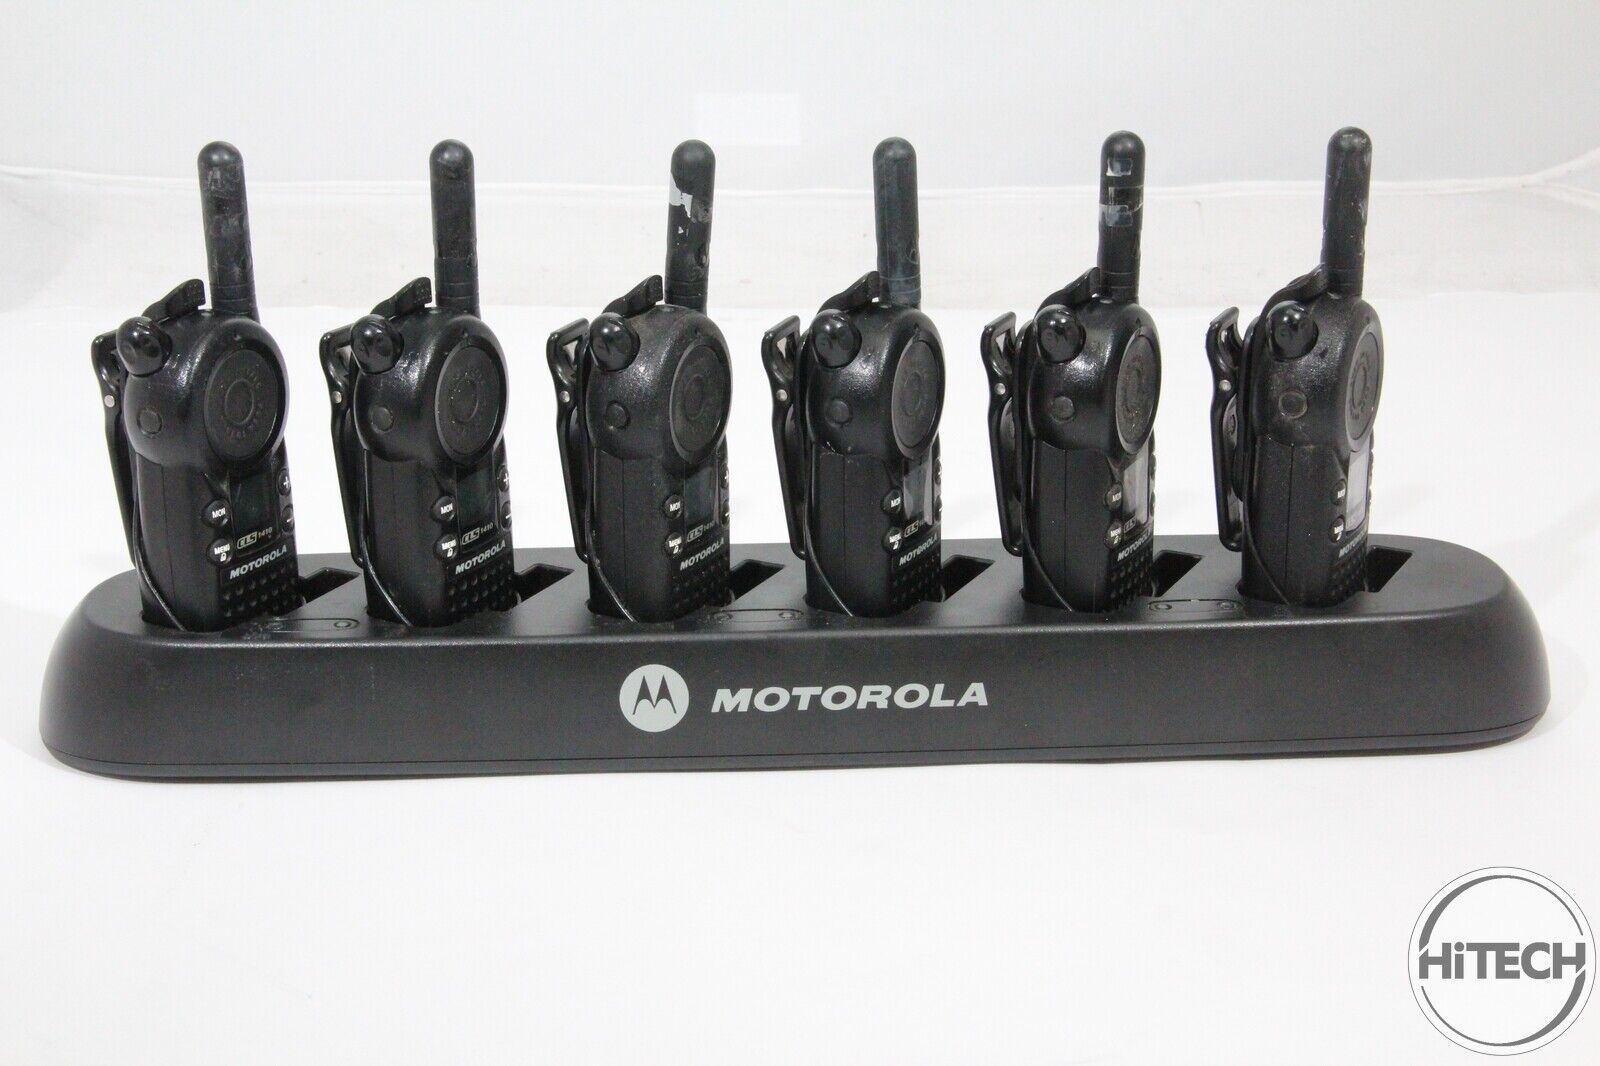 Lot of 6 Motorola CLS1410 Walkie Talkies & Charger HCTN4002A Earpieces, Holsters. Buy it now for 399.99